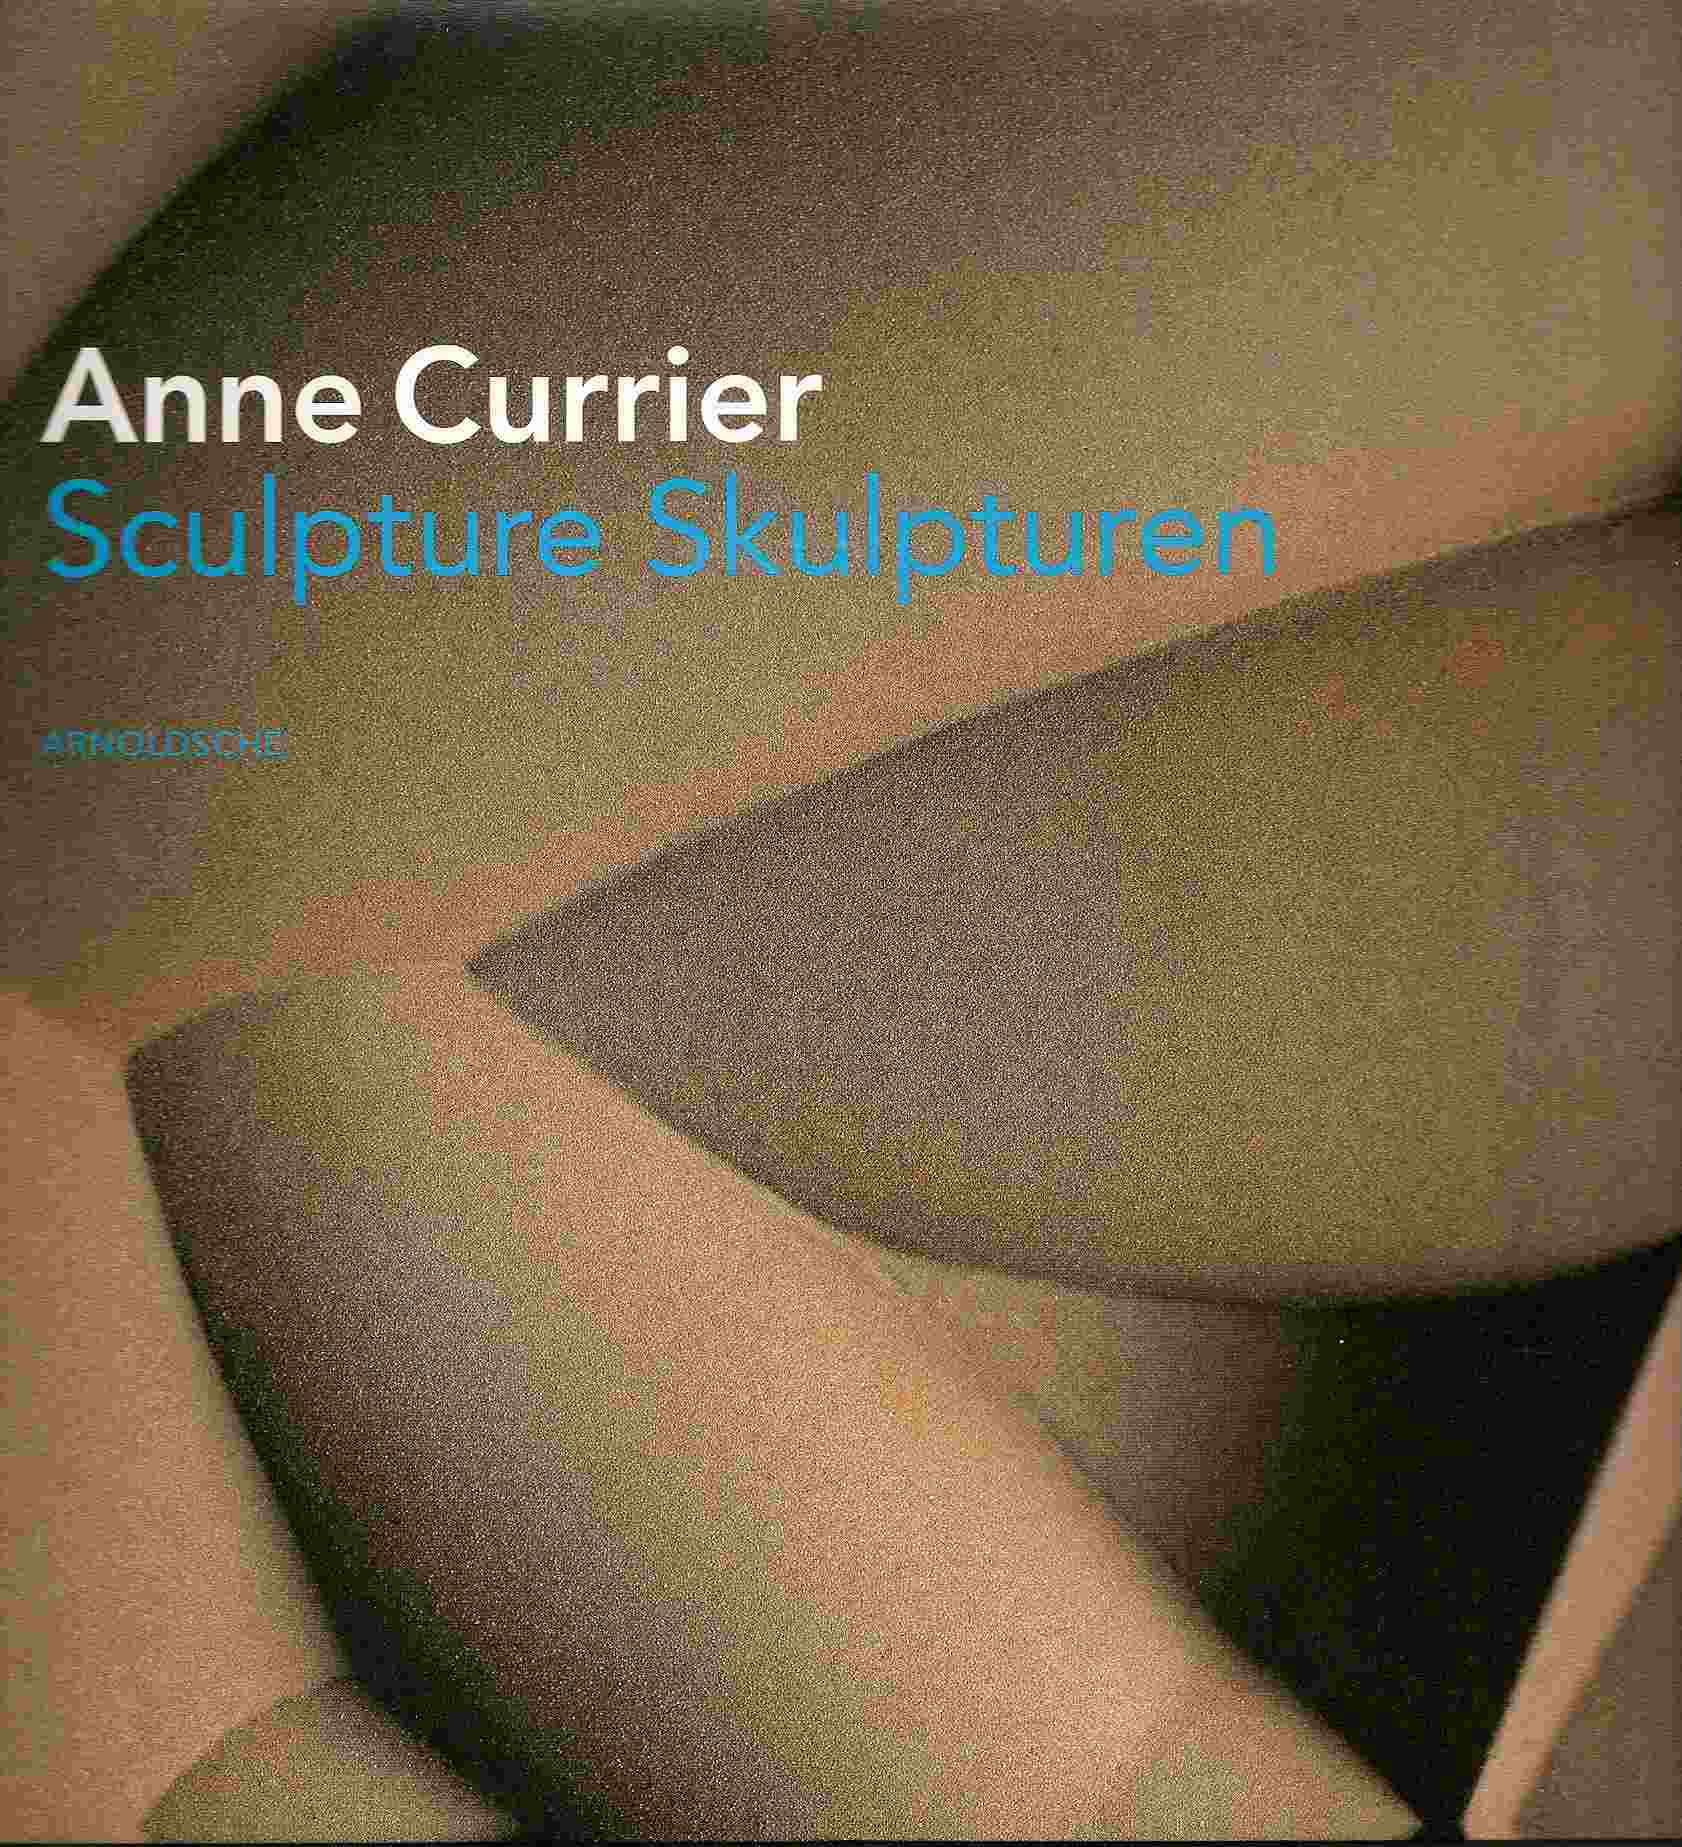 Image for ANNE CURRIER: SCULPTURE SKULTUREN